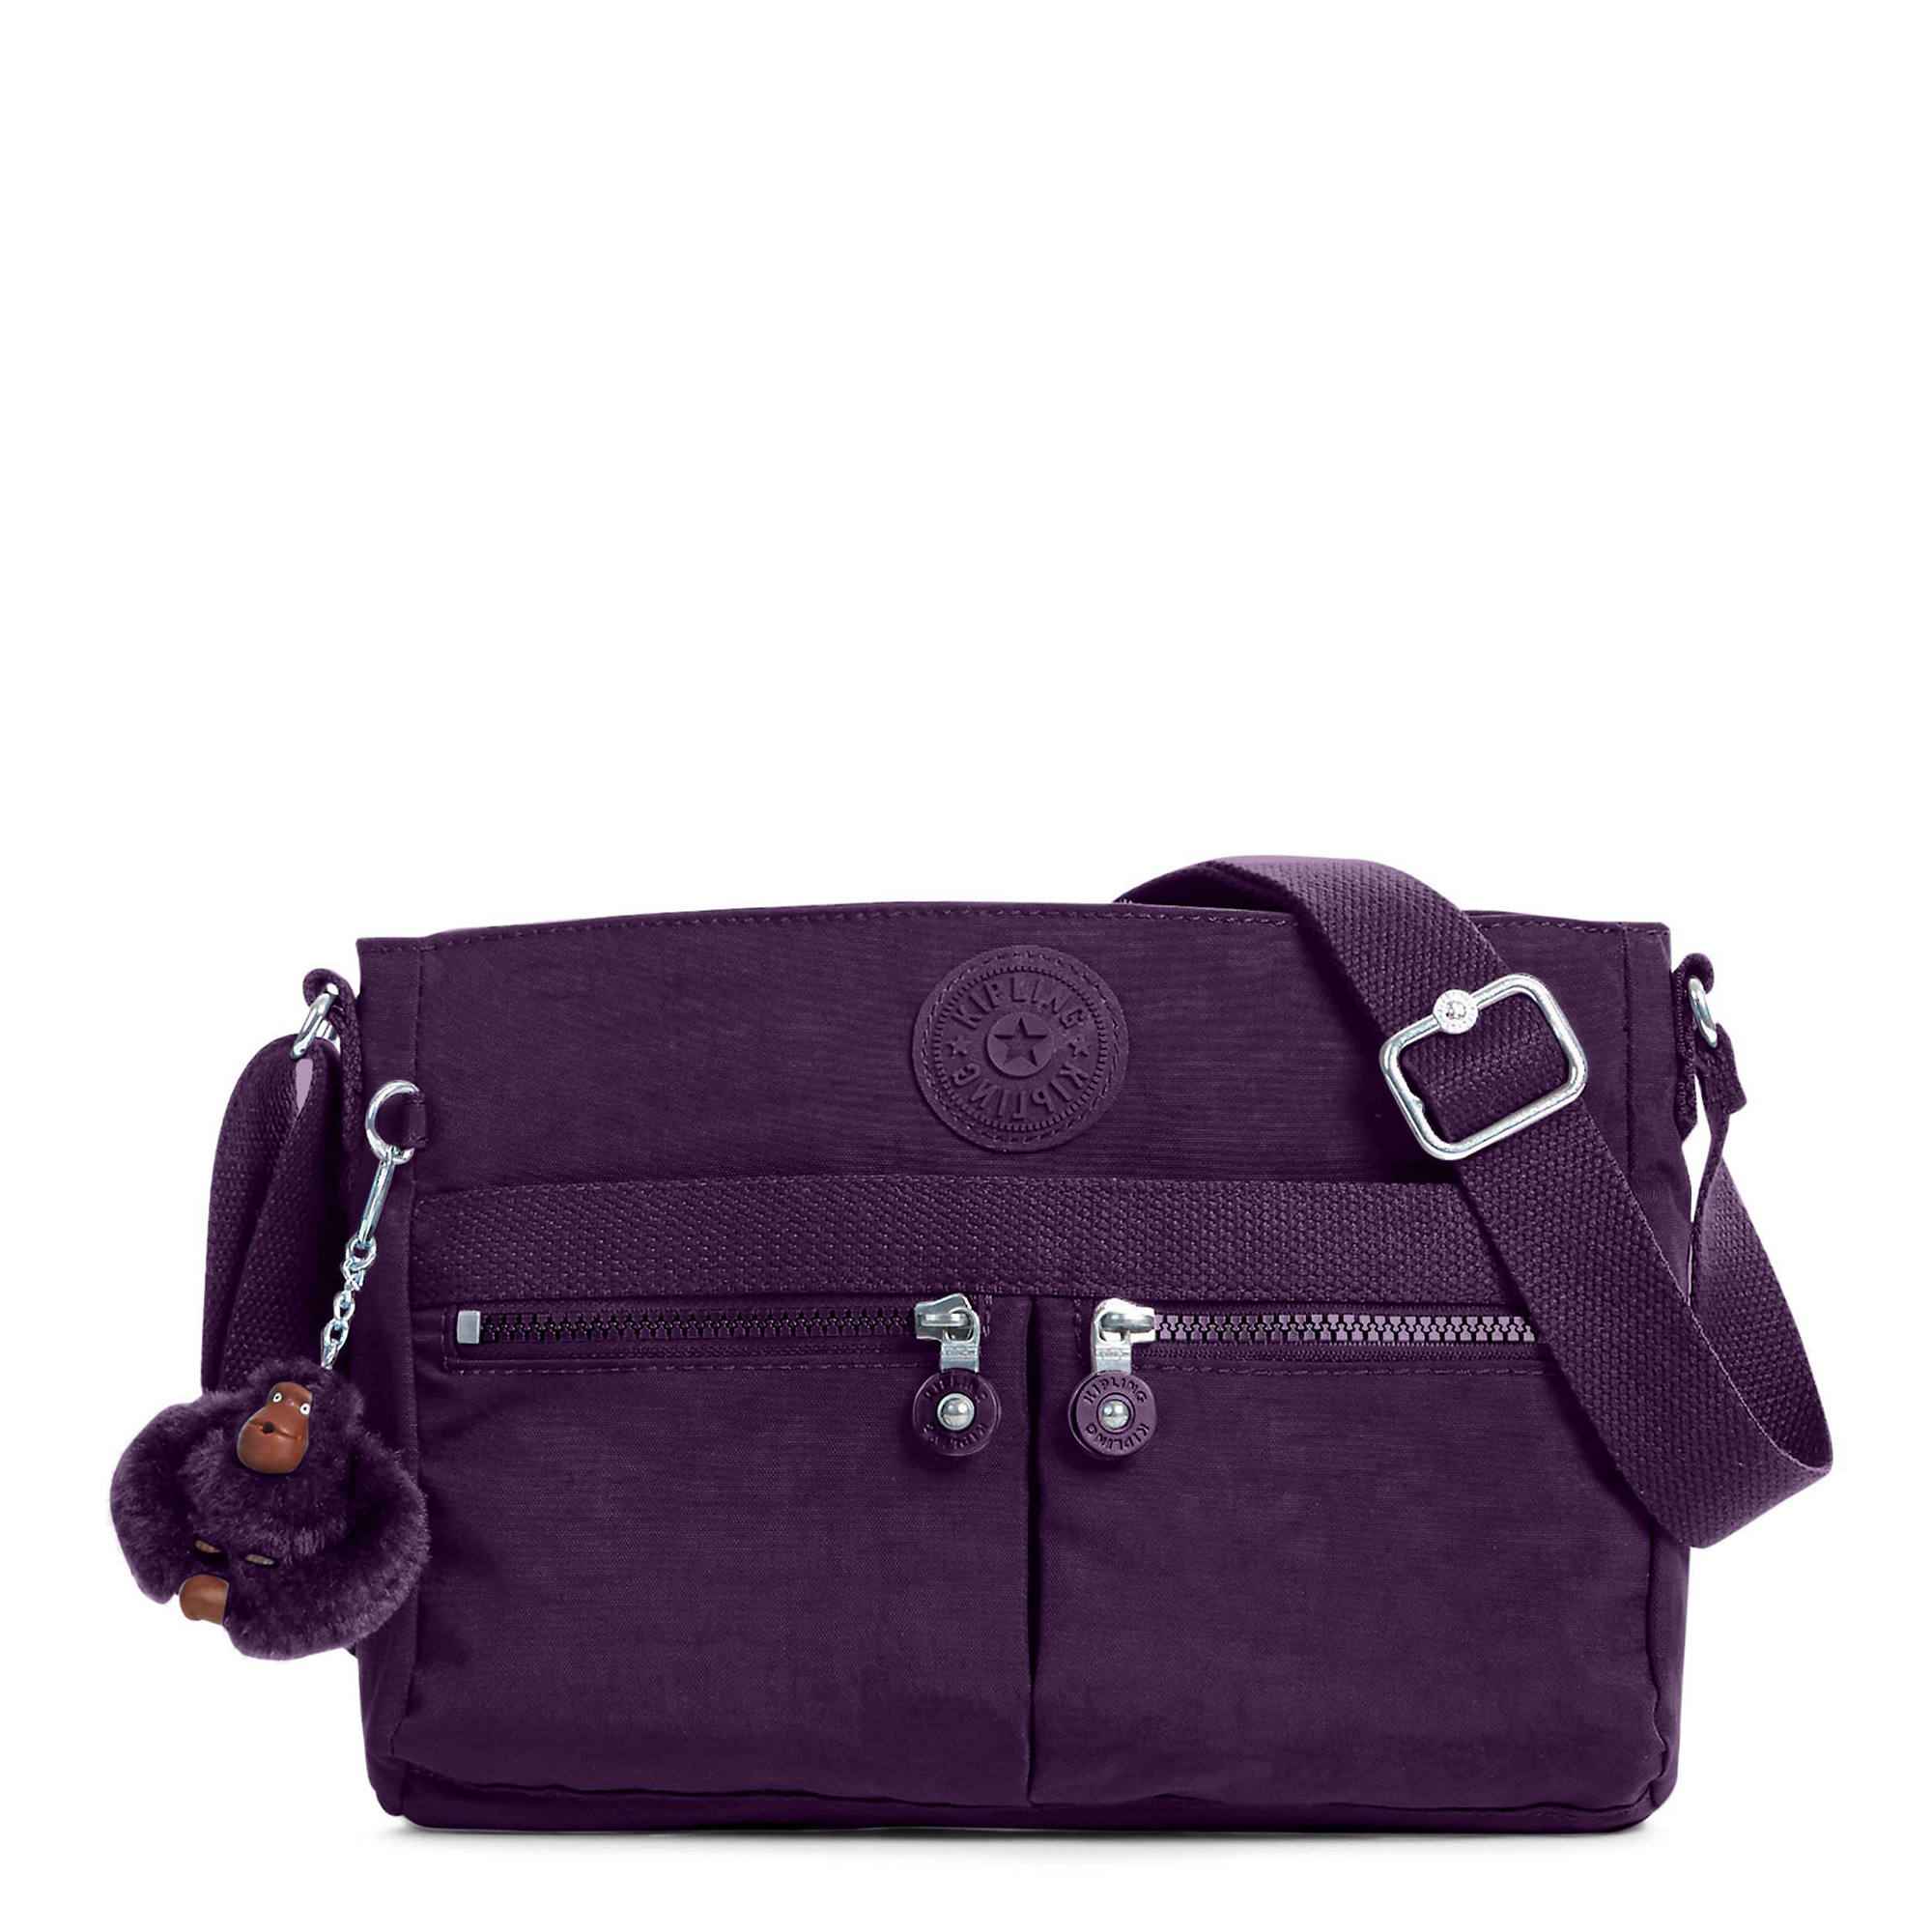 Angie Handbag Deep Purple Large